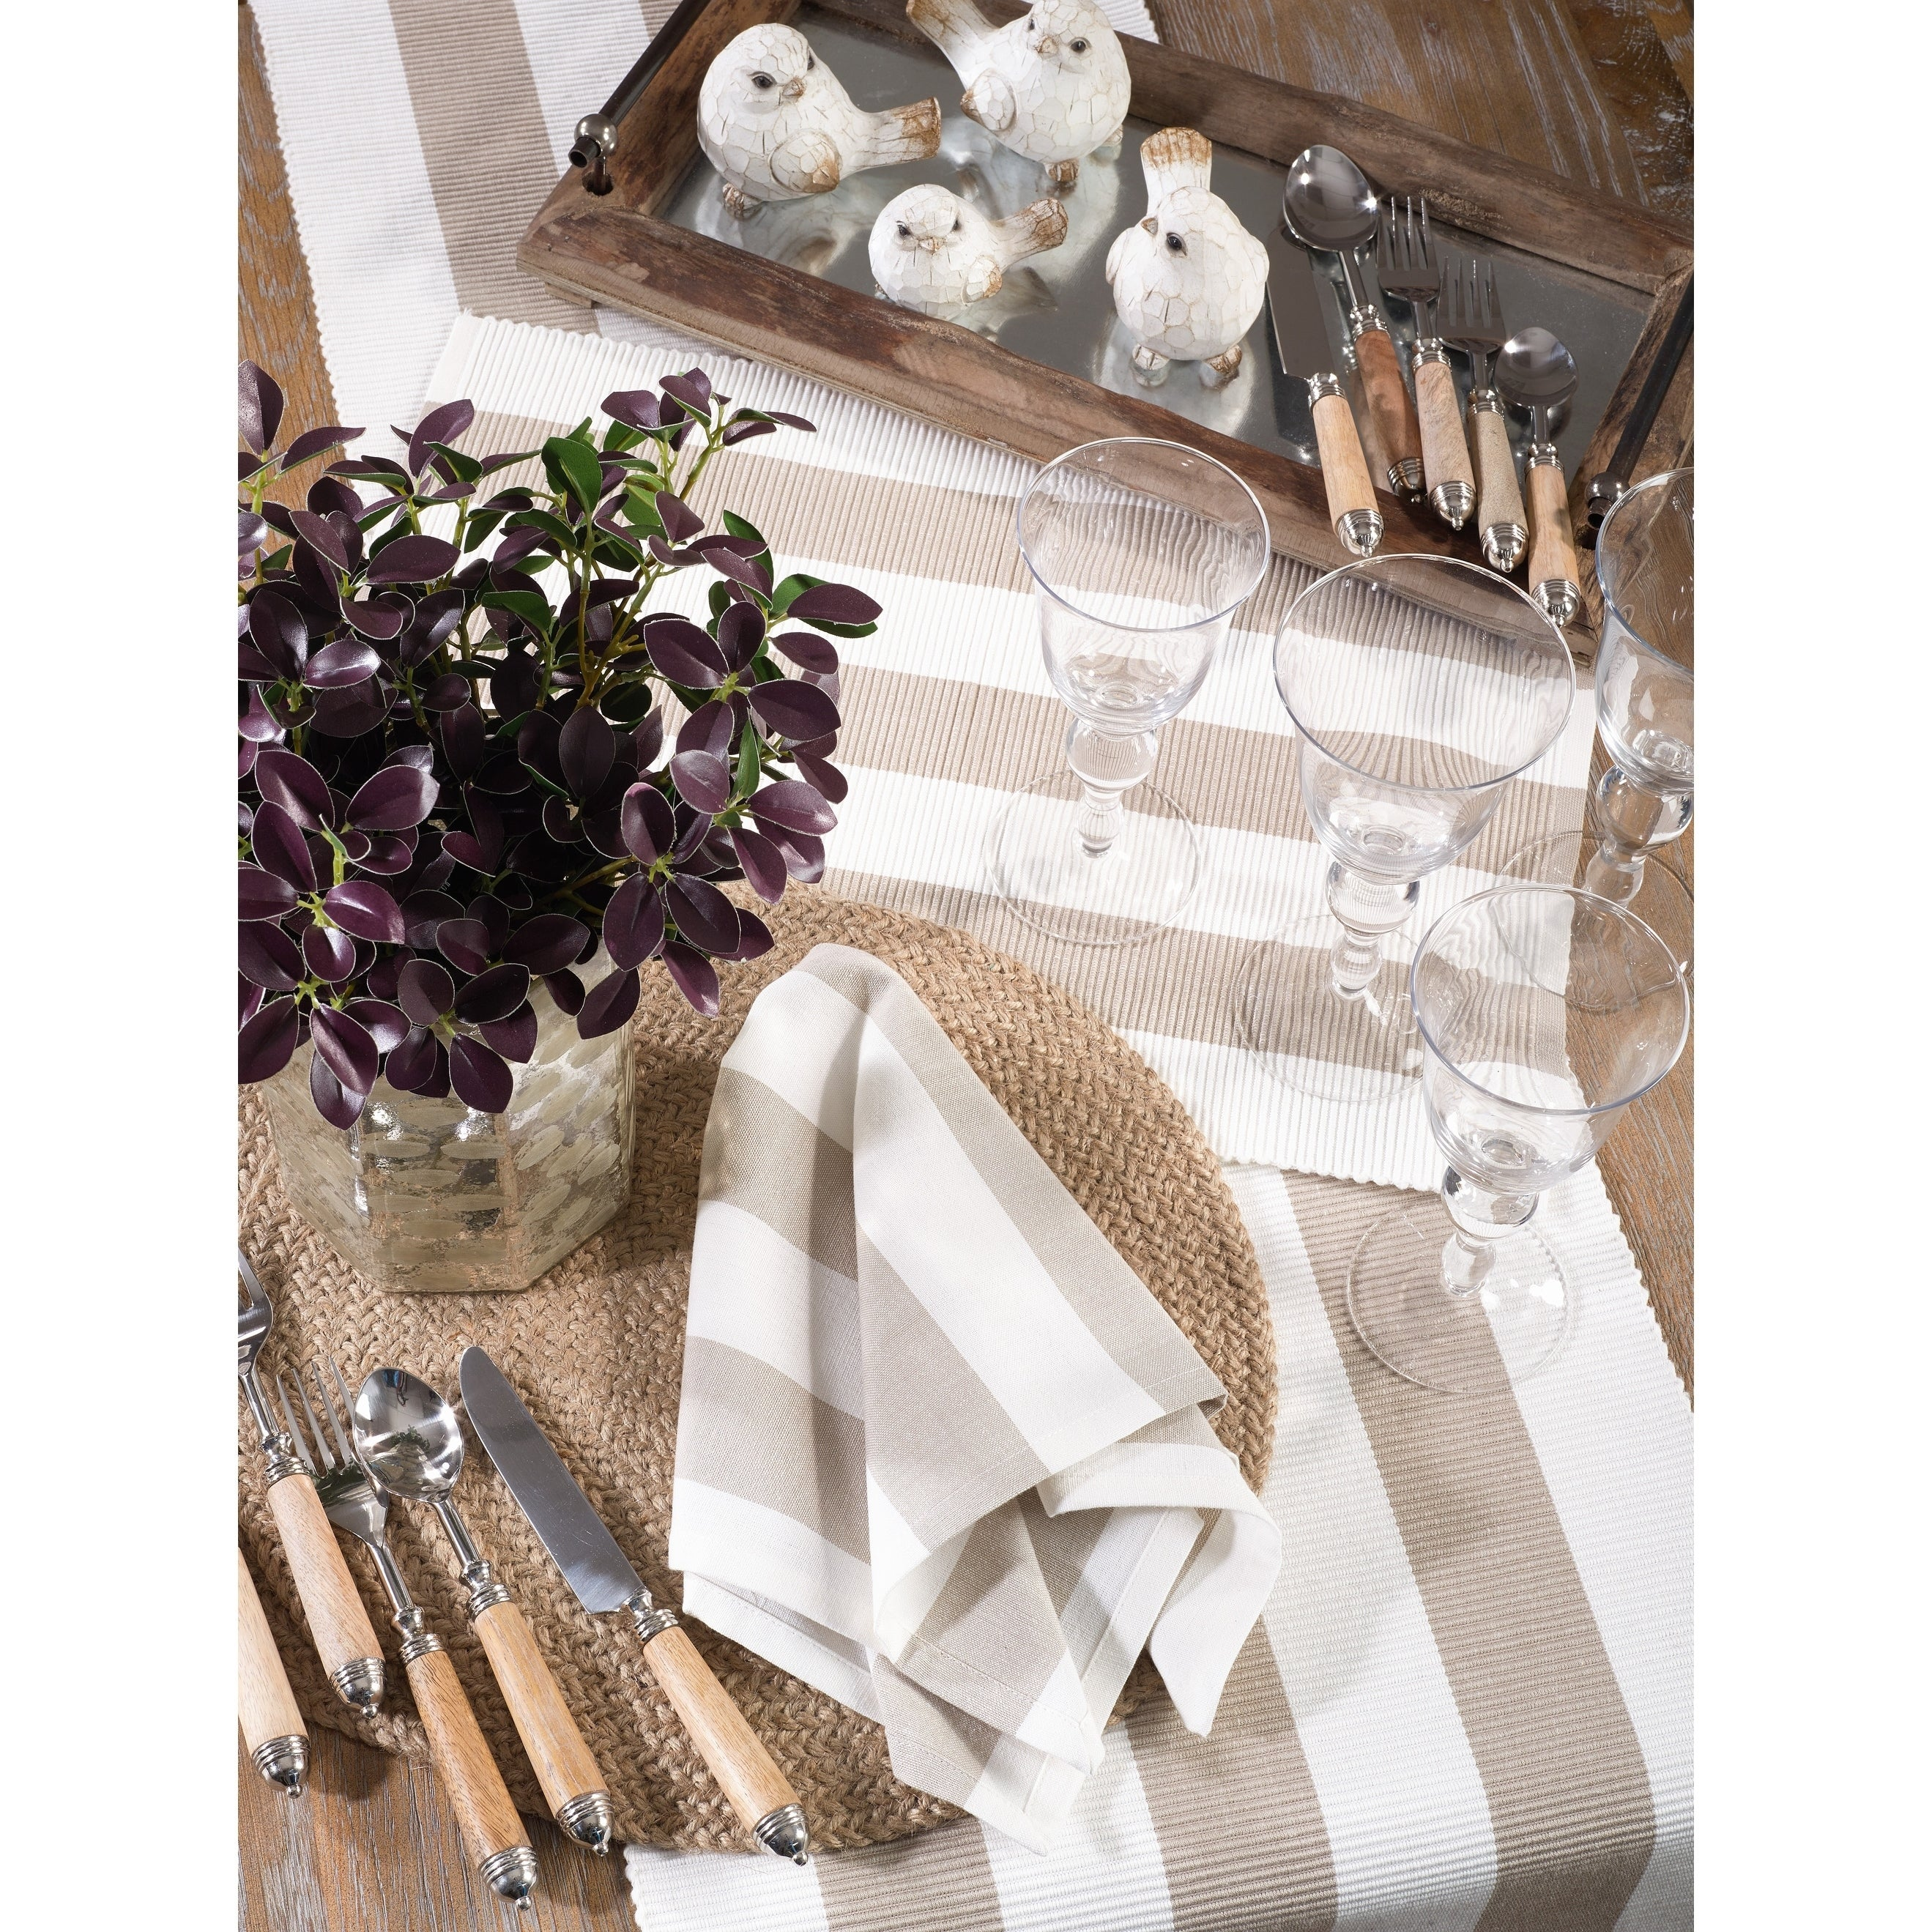 Saro Lifestyle Taupe Cotton Placemats With Striped Design Set Of 4 Overstock 27599719